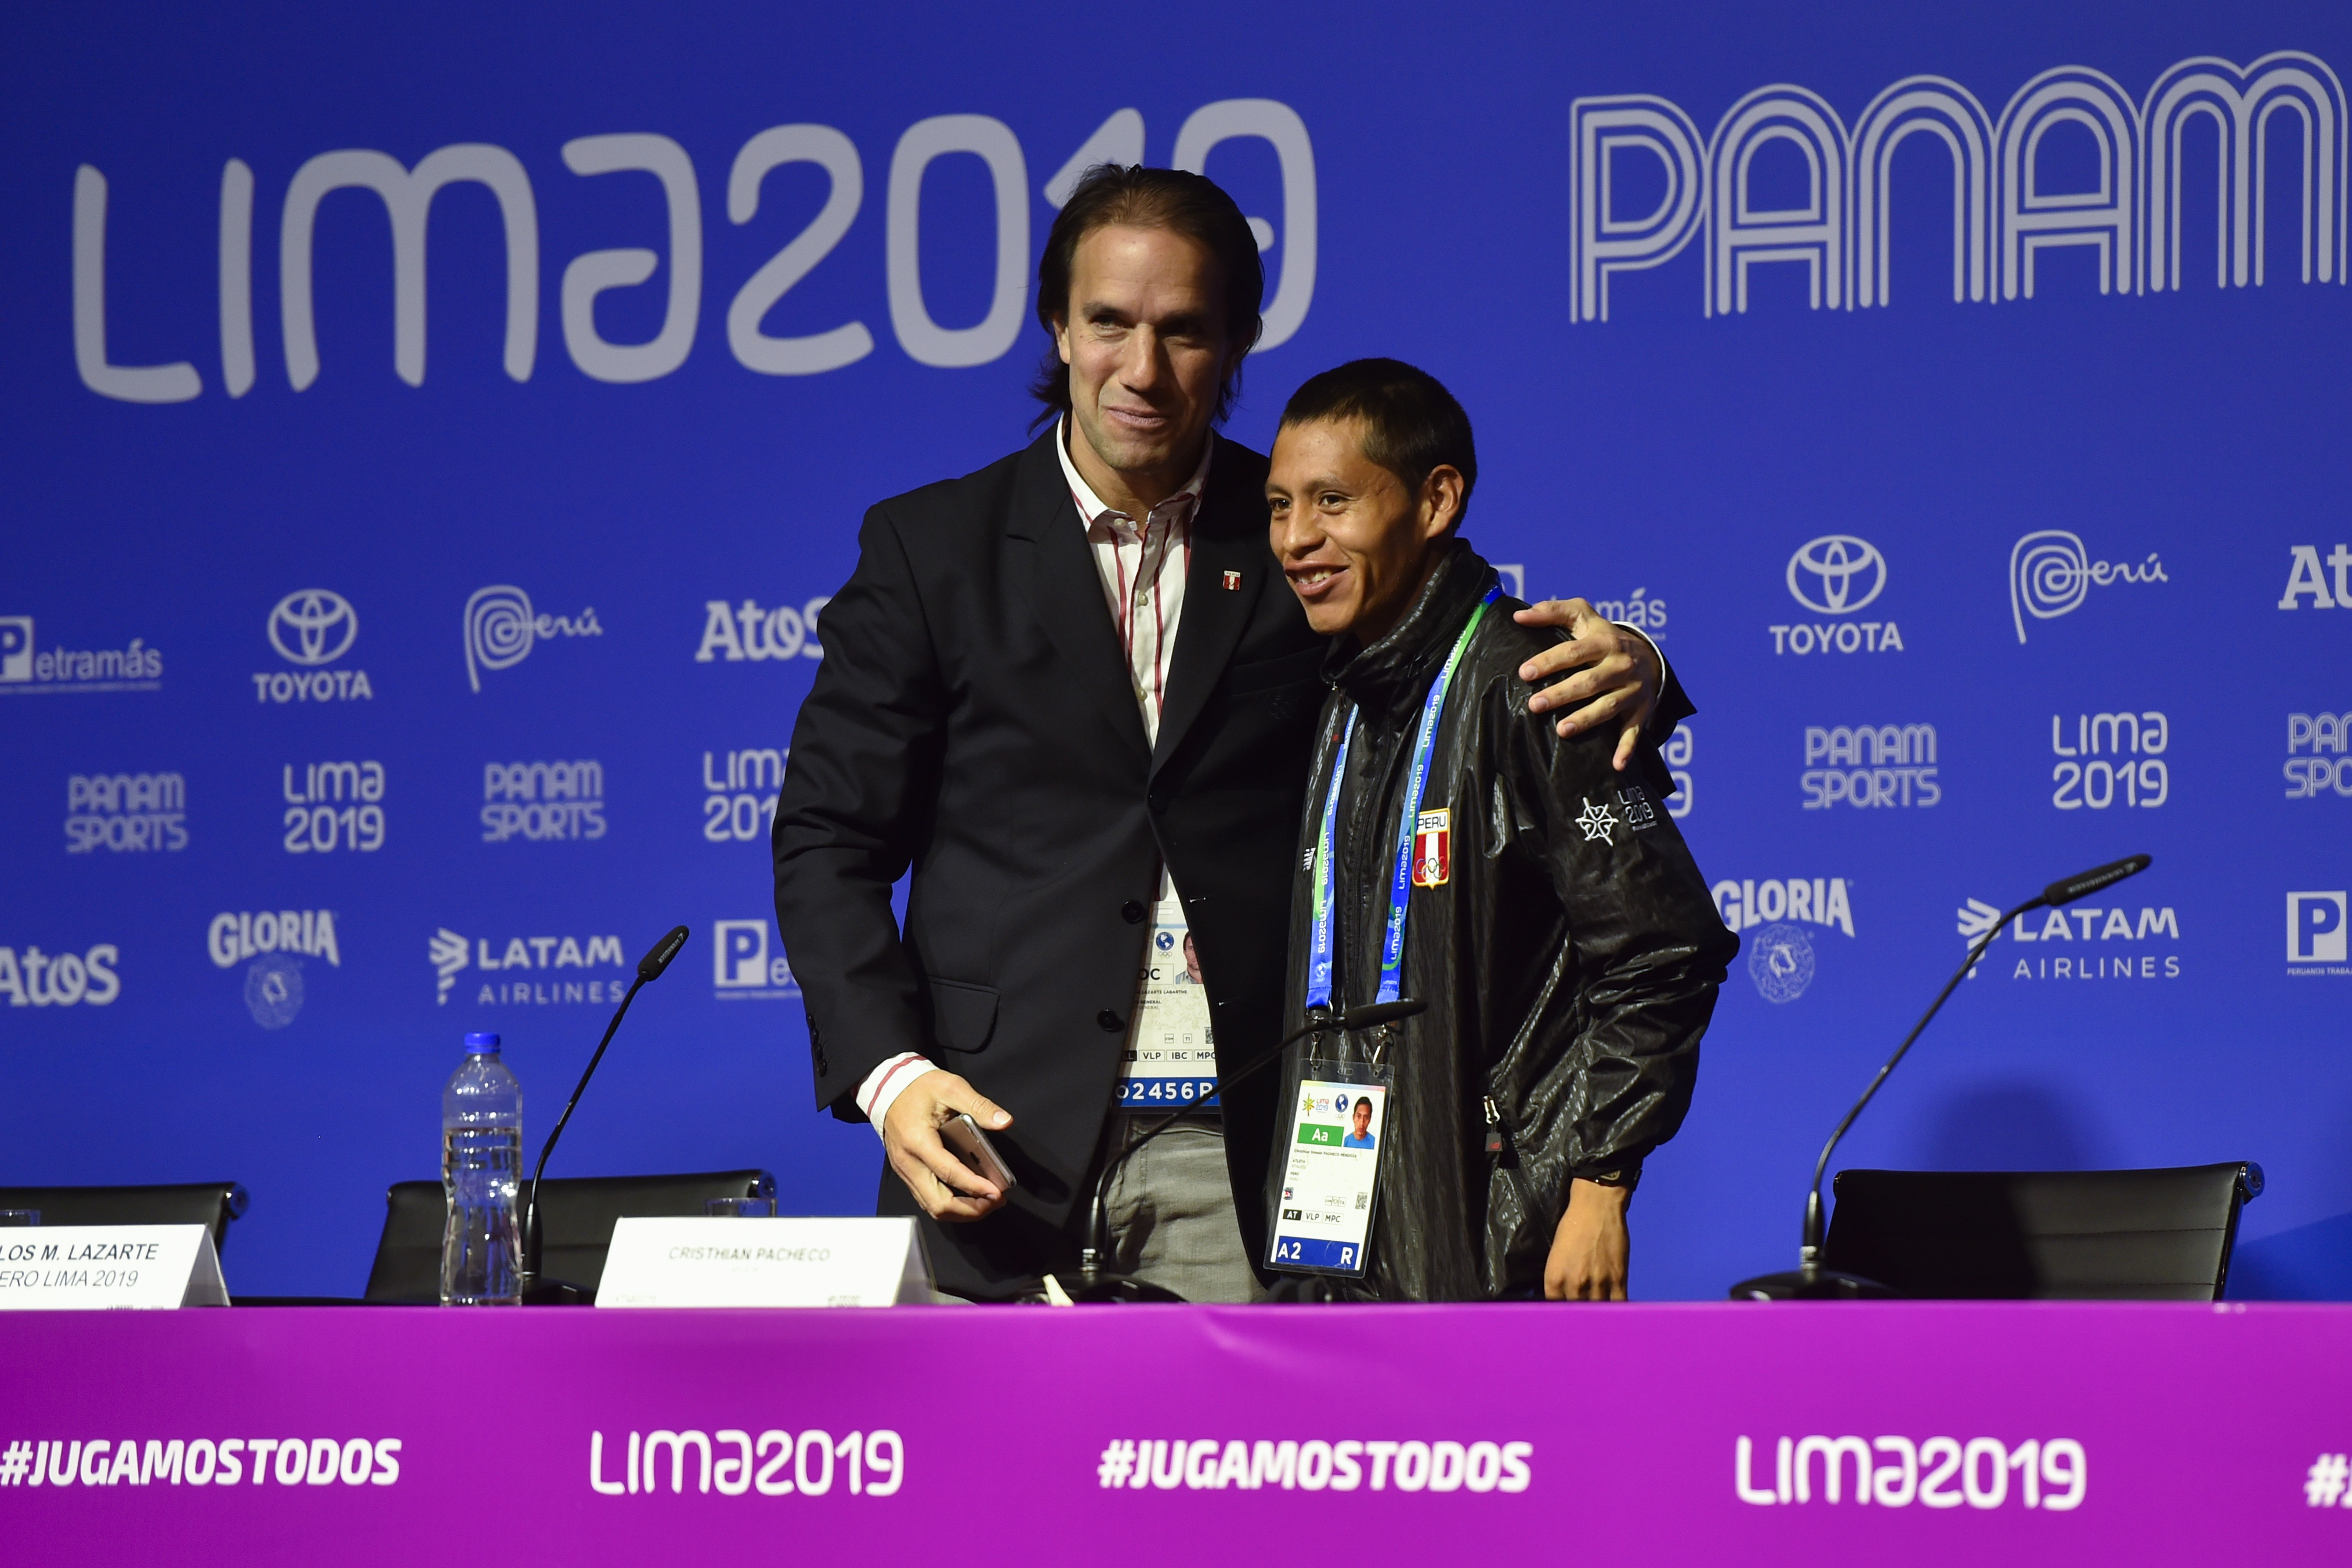 2019-07-28_Athletics_JS_Lima2019_0005.jpg